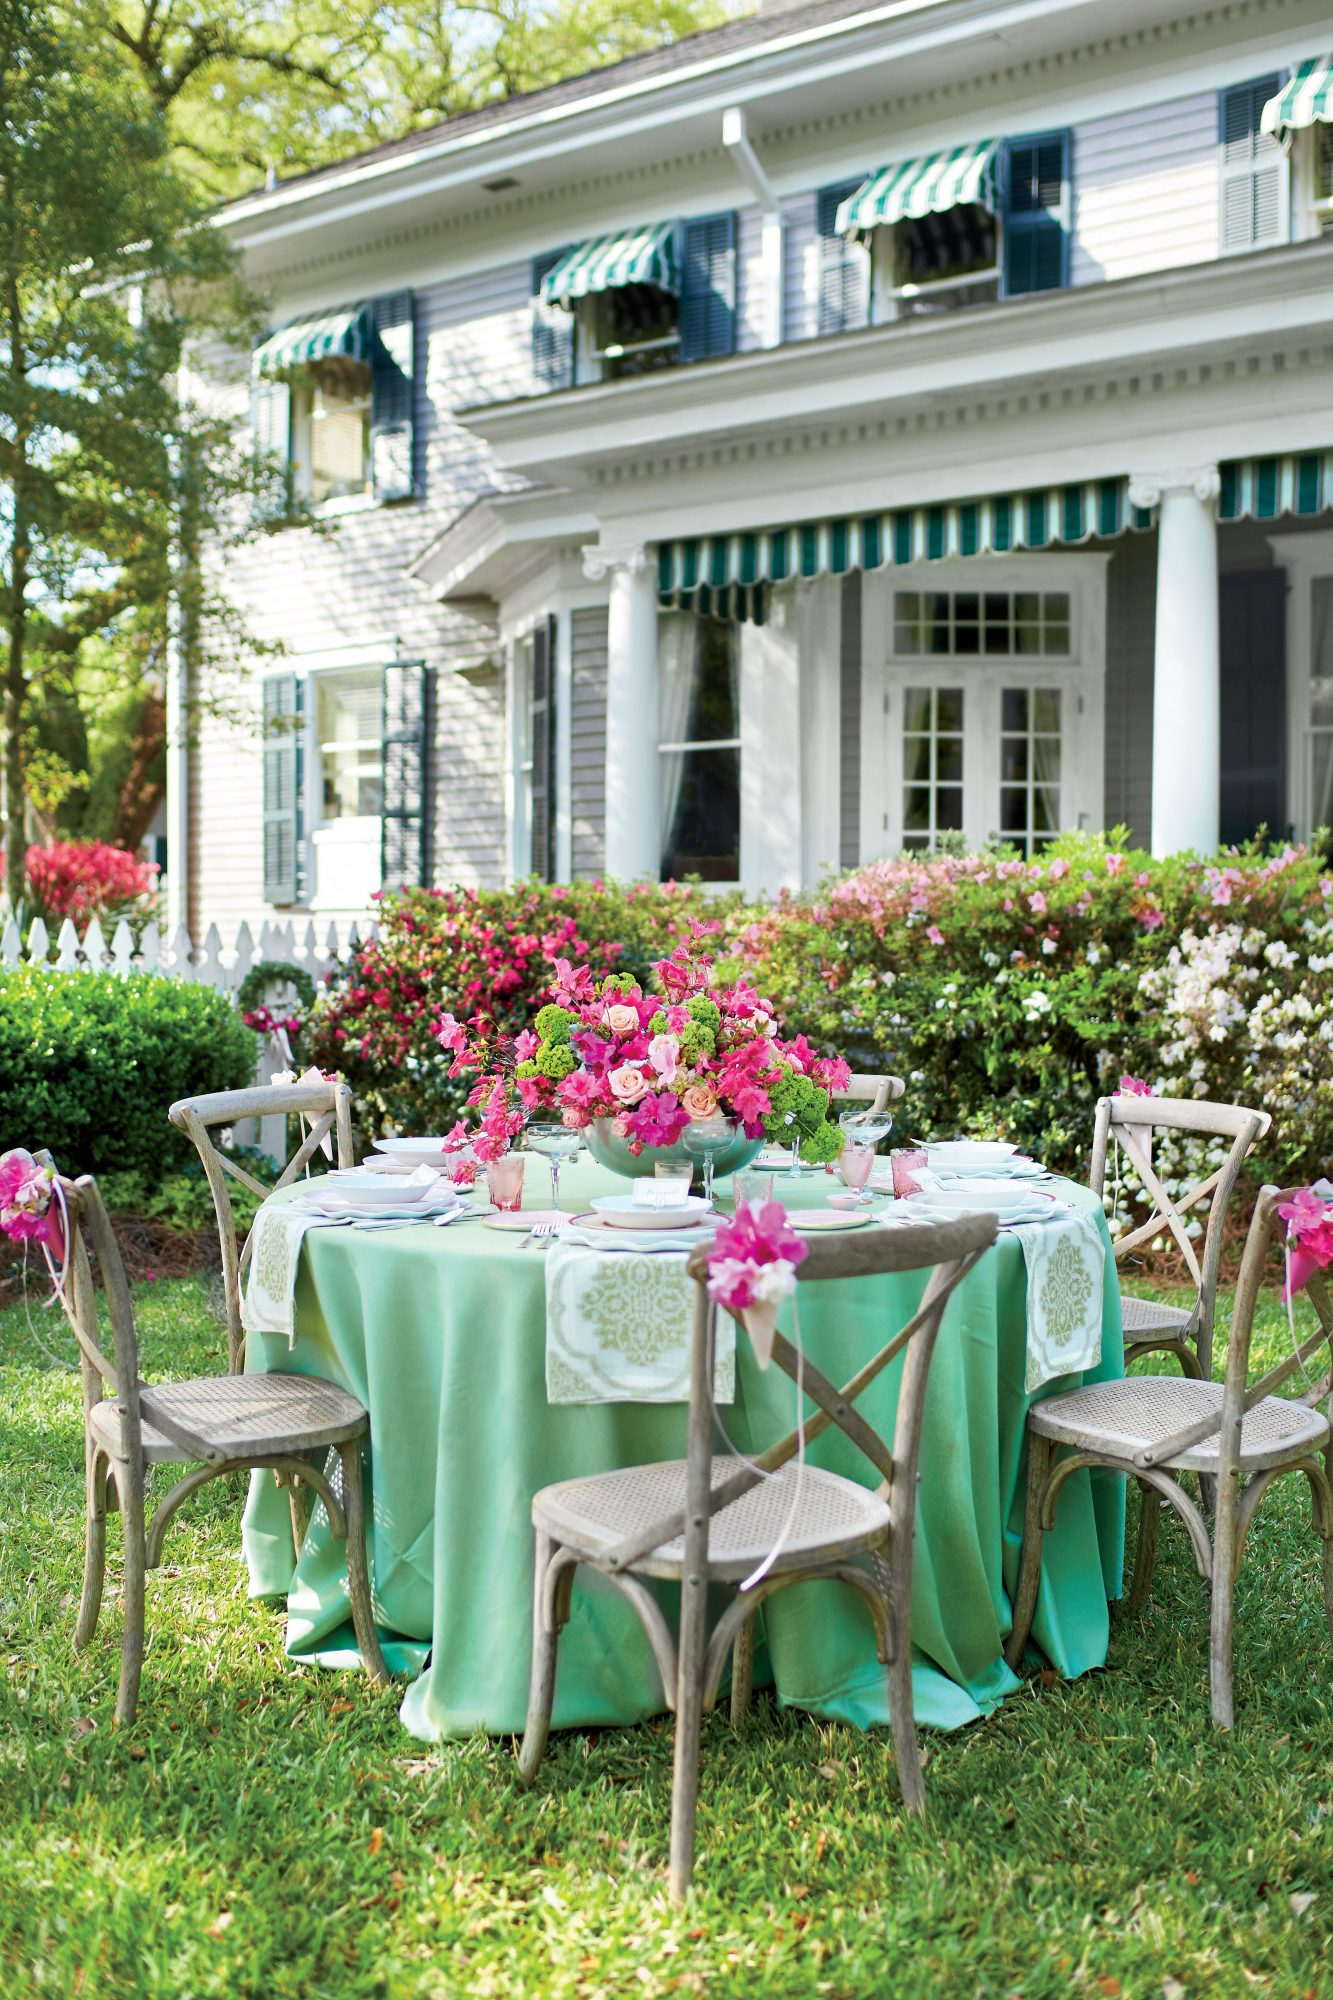 Azalea Flower Spring Party Garden Setting